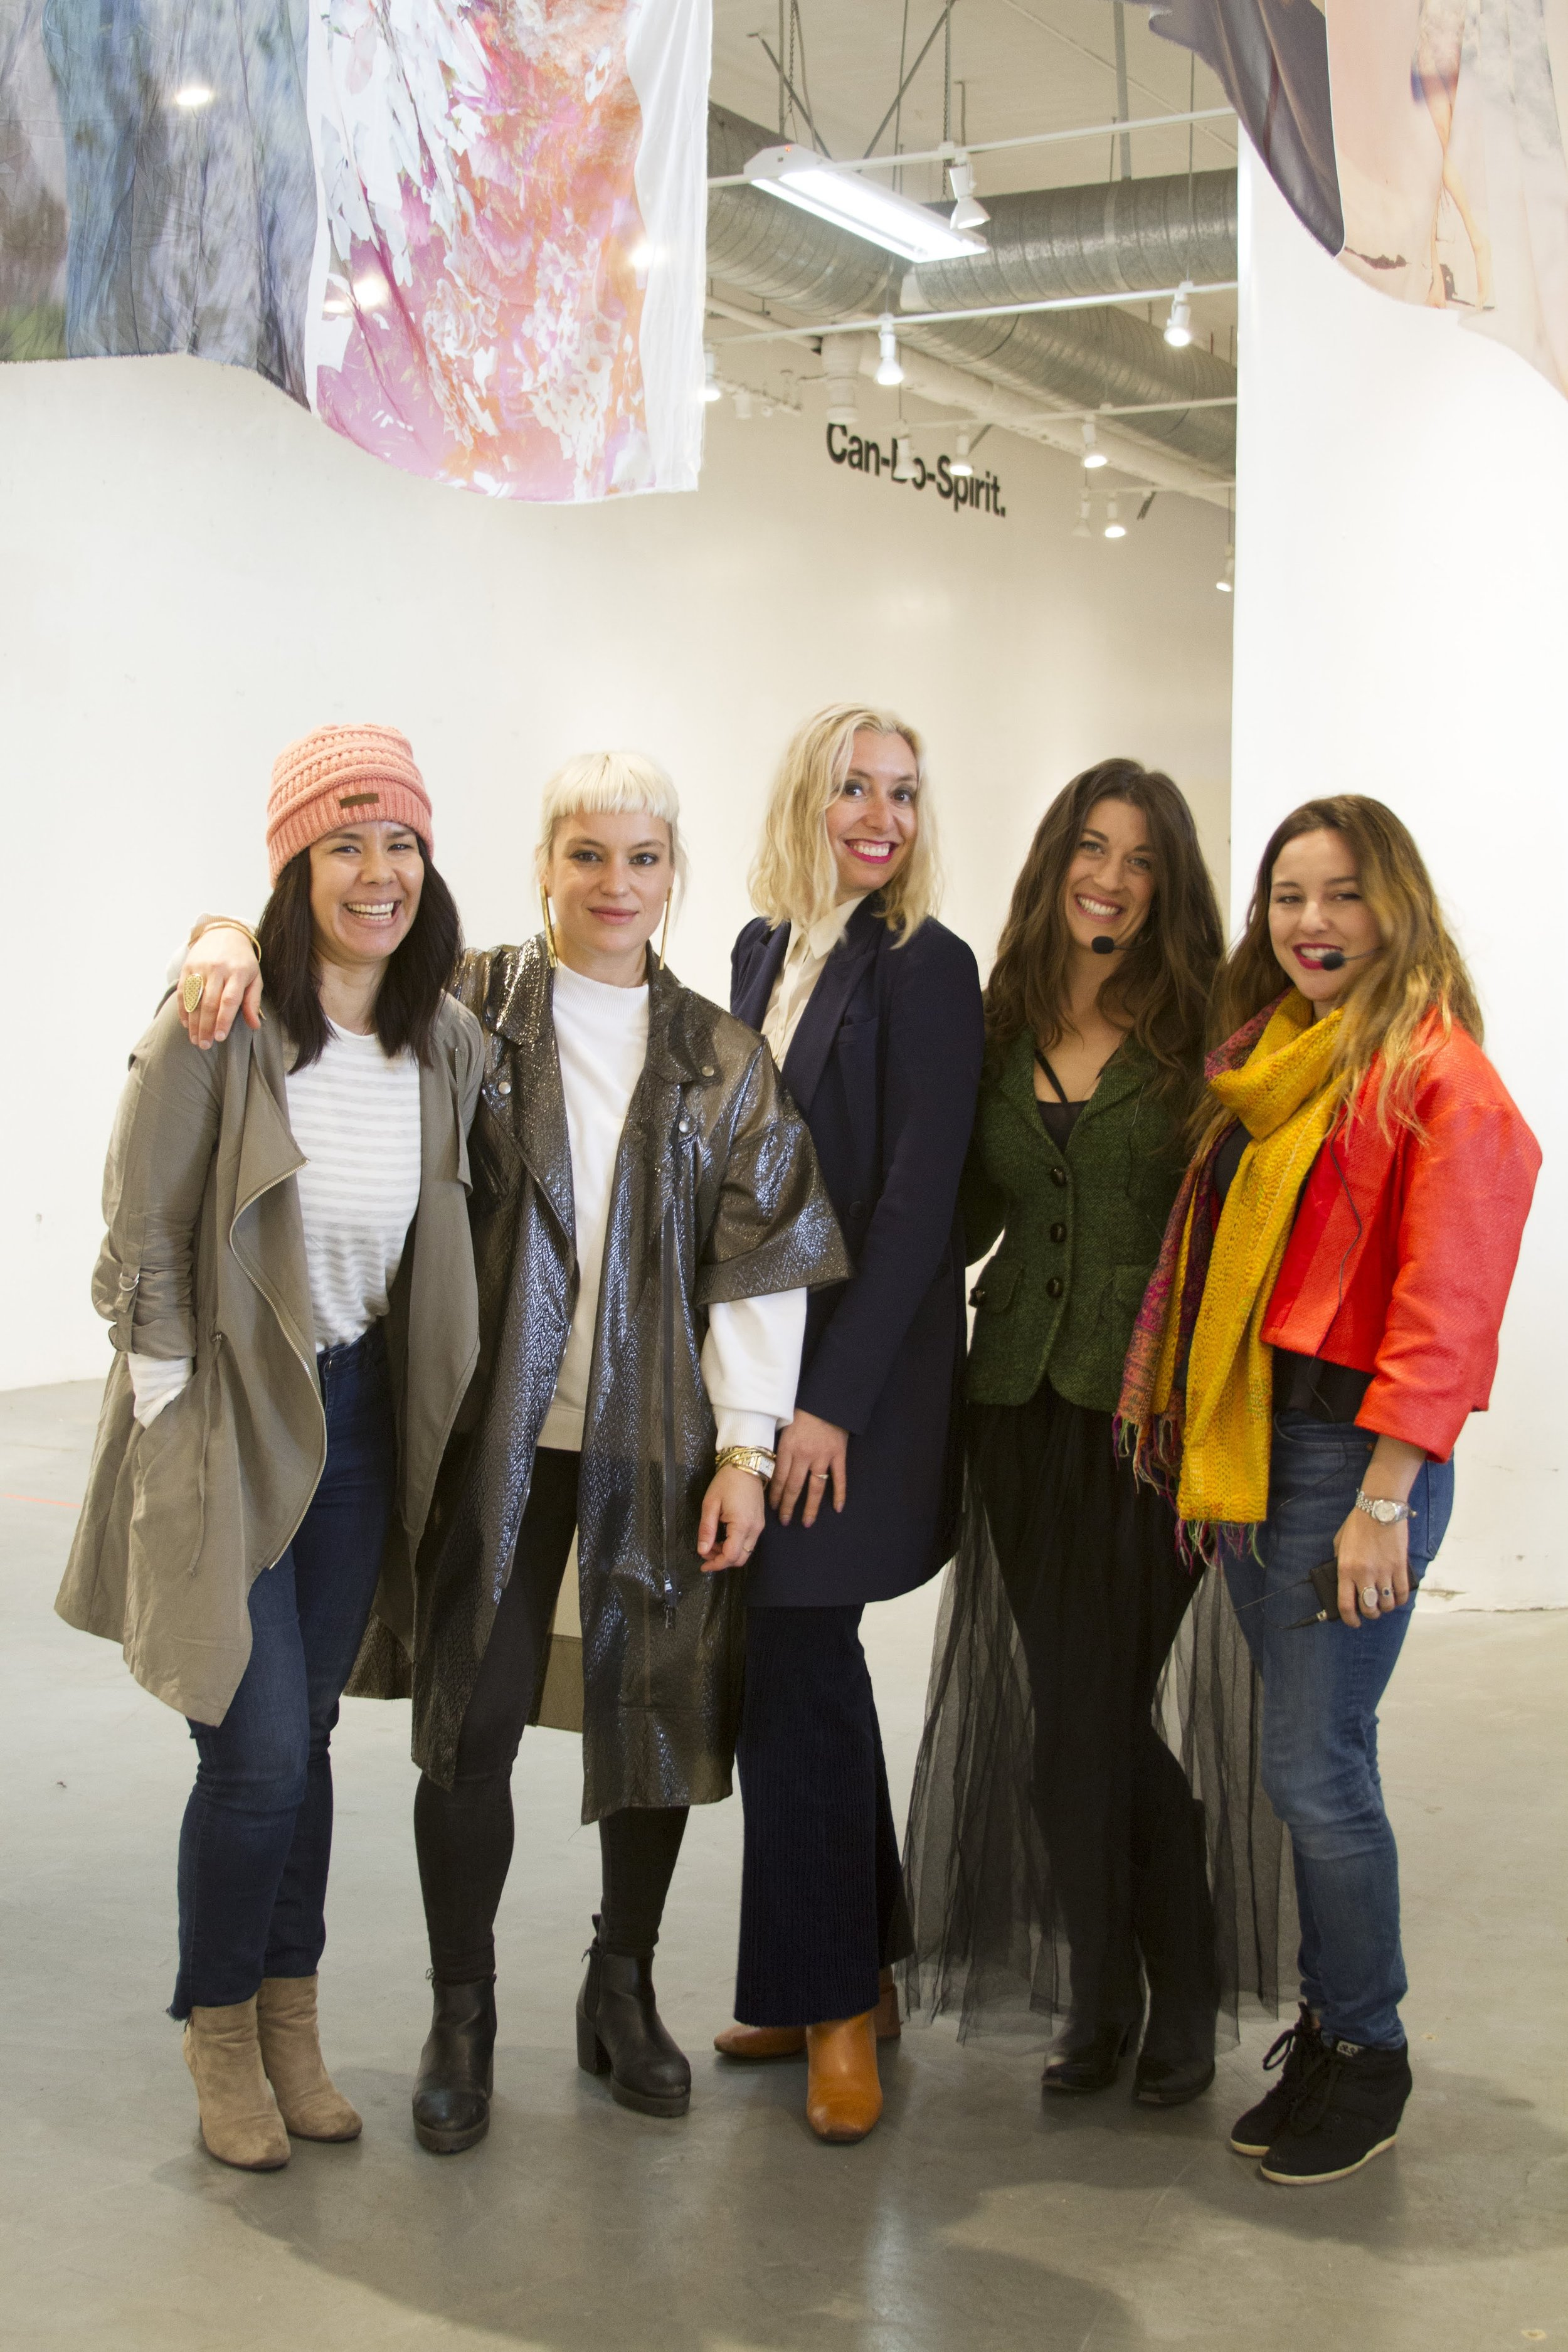 Savoir-agency-the-row-dtla-leanin-losangeles-event-workshop-speakers-panel-career-development-passthemic-girlschool-la-girlschoolla-annabulbrook-grid110-miki-reynolds-pace-webb-mossy-creative-faith-ann-young-laci-brown-natasha-case-coolhaus.jpg